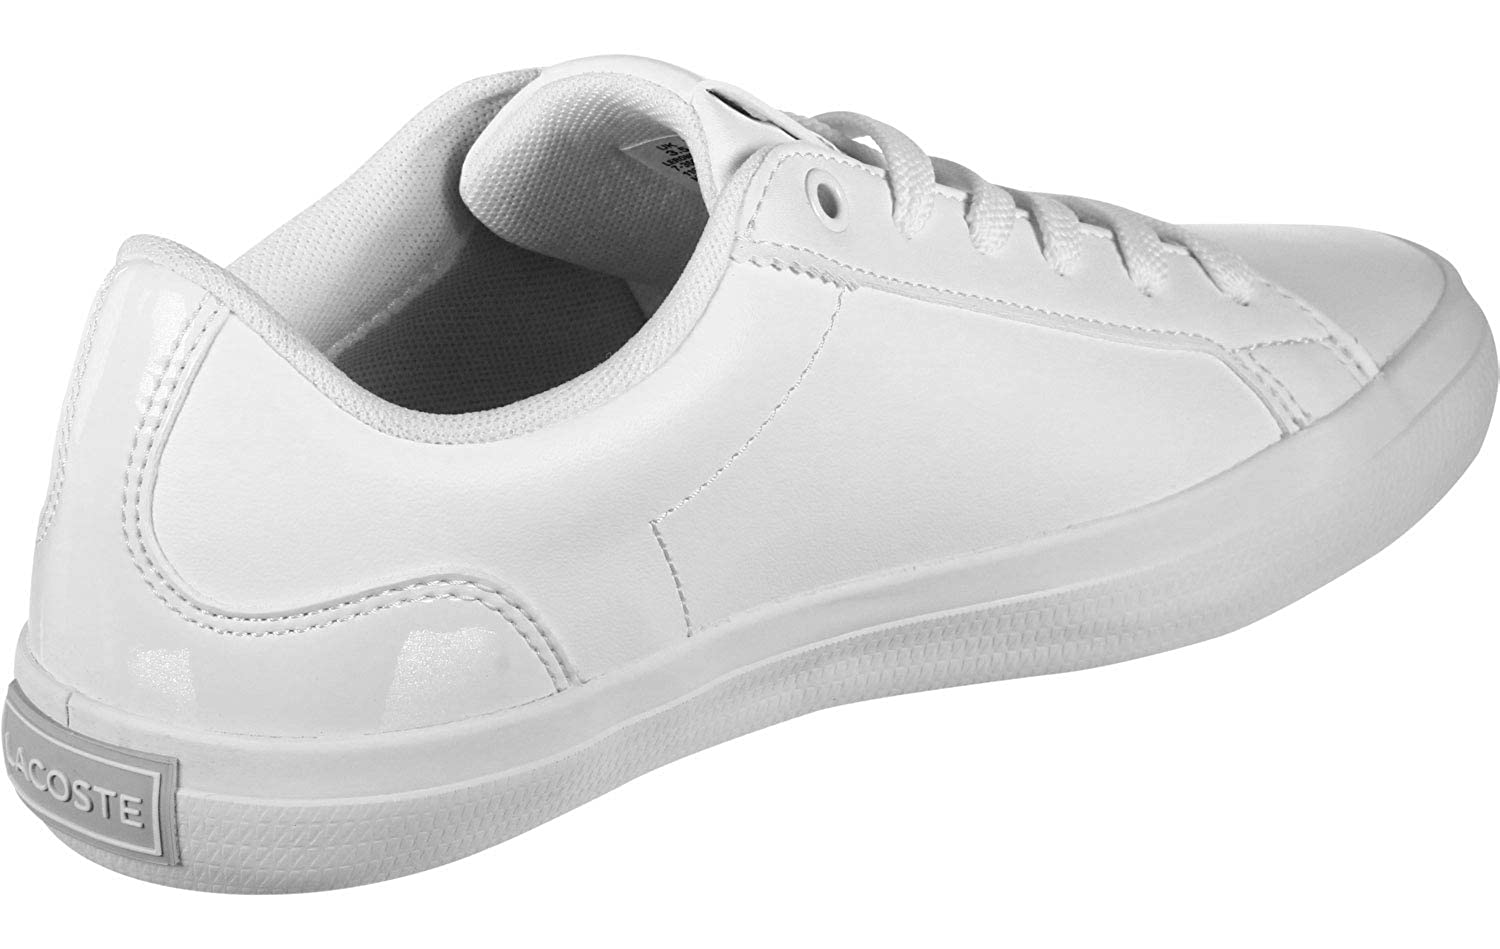 45146314f Lacoste Lerond 118 1 W Shoes White  Amazon.co.uk  Shoes   Bags